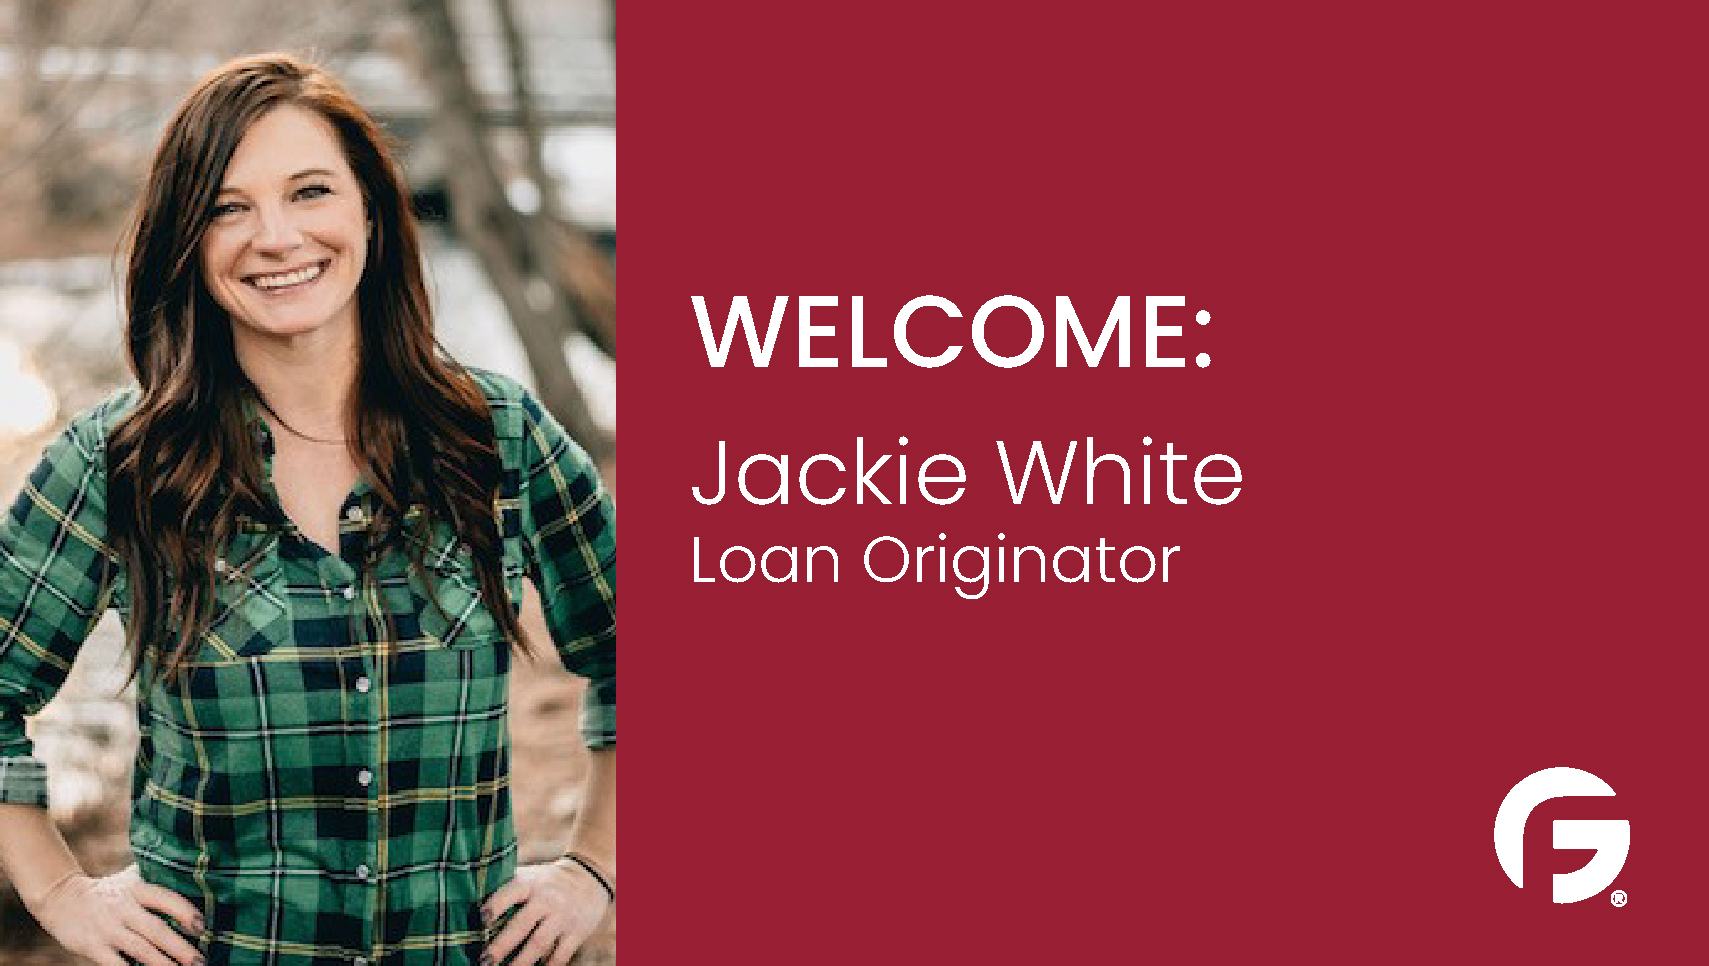 Jackie White, Loan Officer, serving the state of Oregon